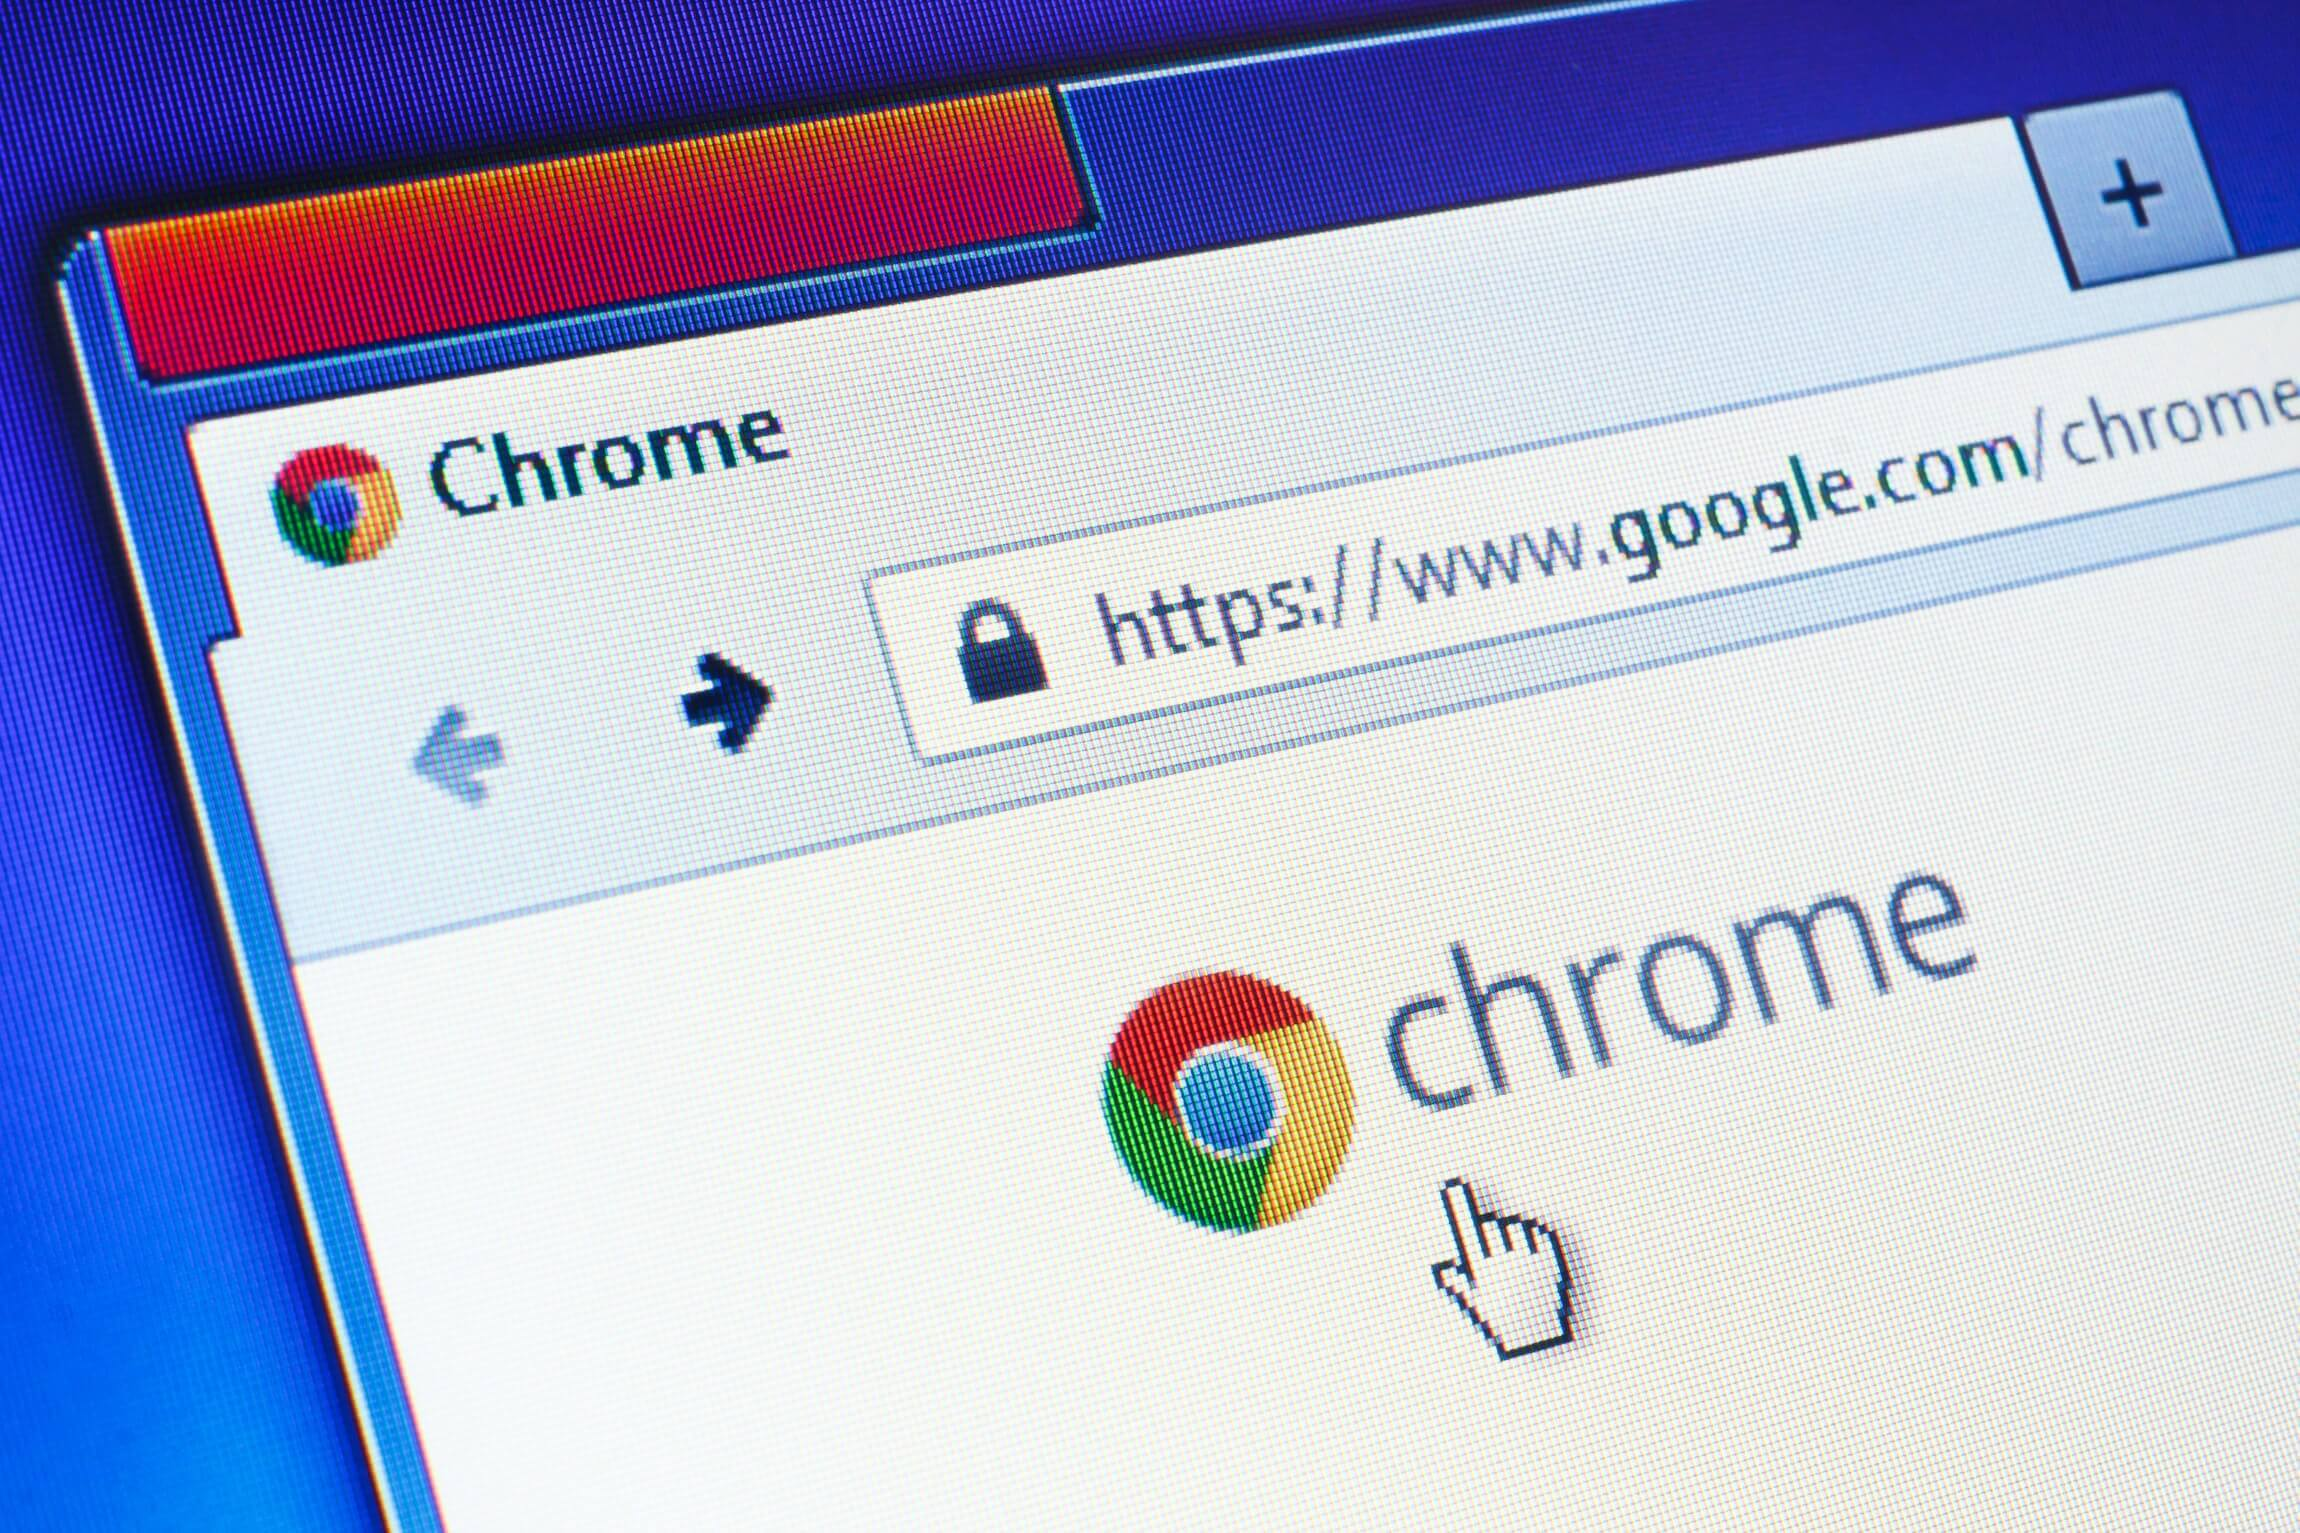 Experimental Chrome feature could improve battery life up to 28 percent